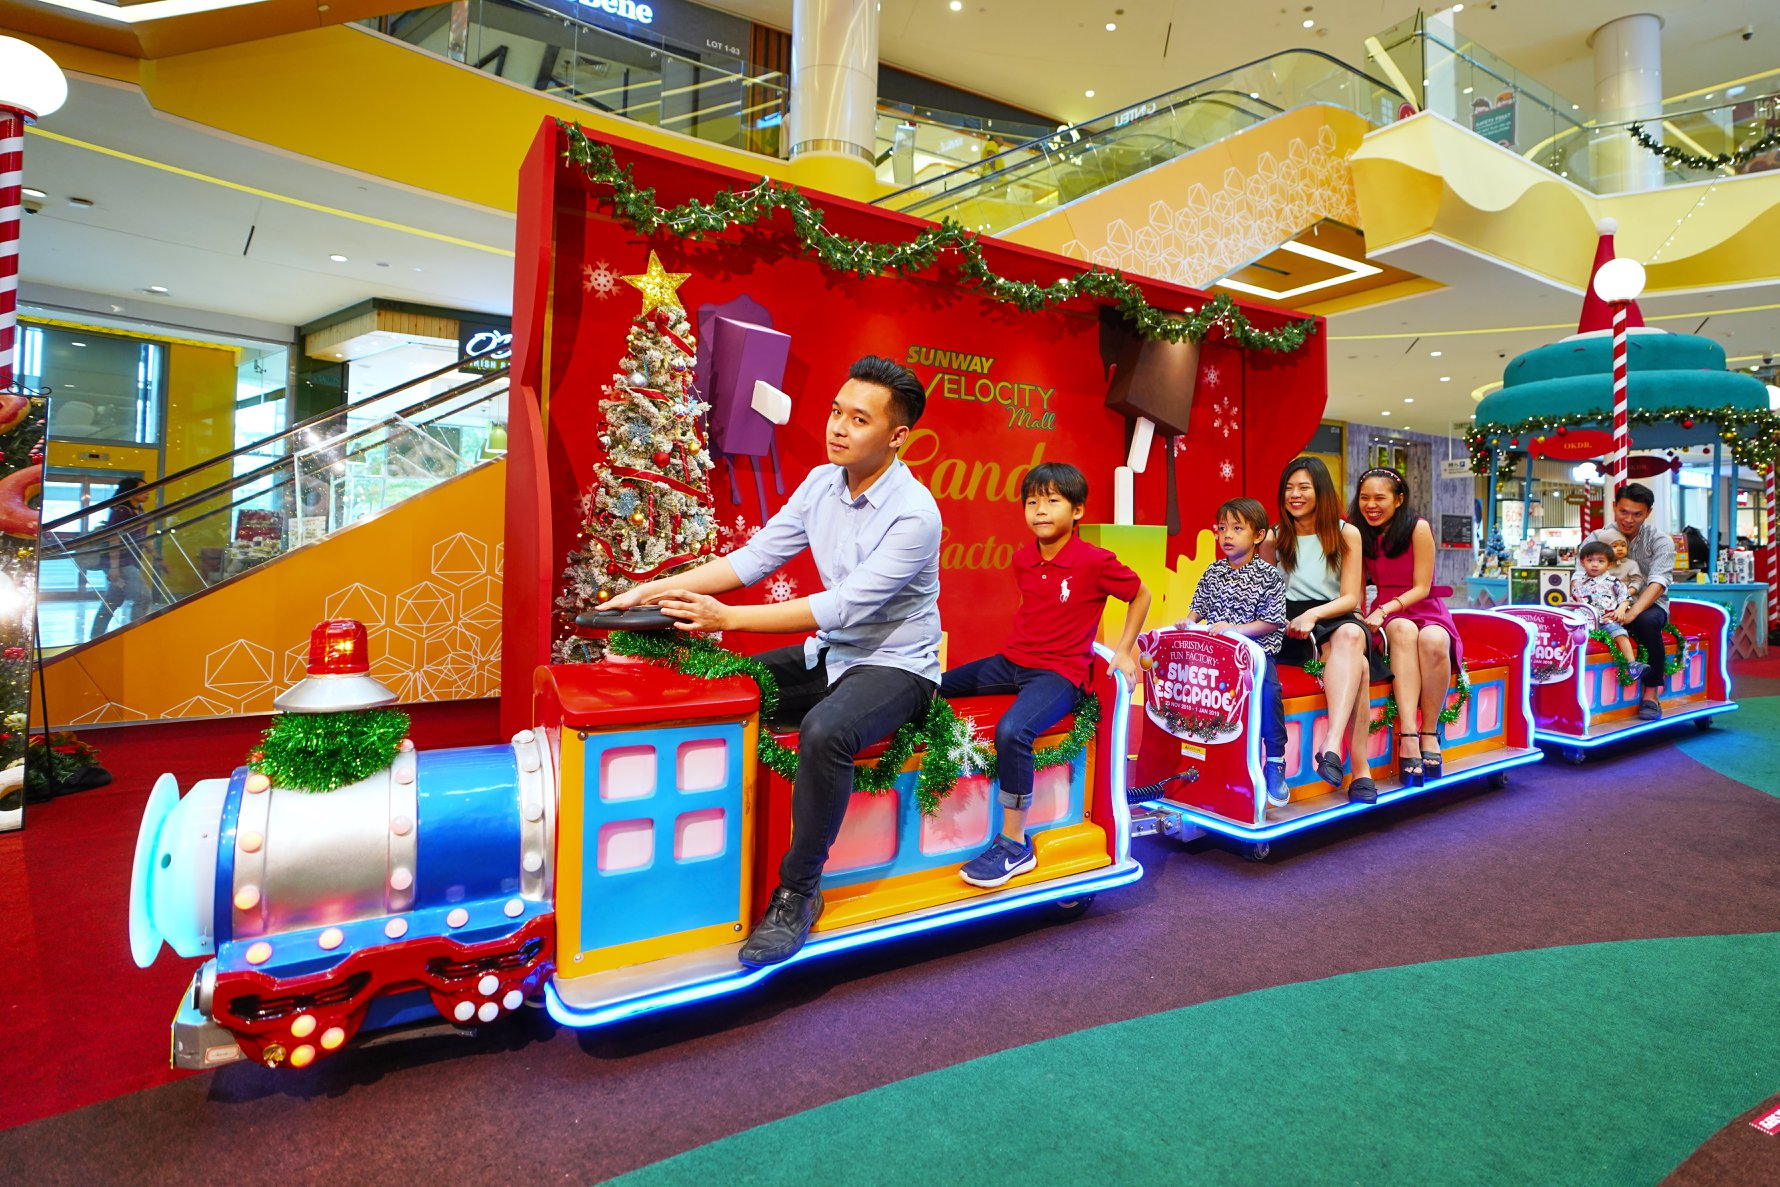 Image from Sunway Velocity Mall